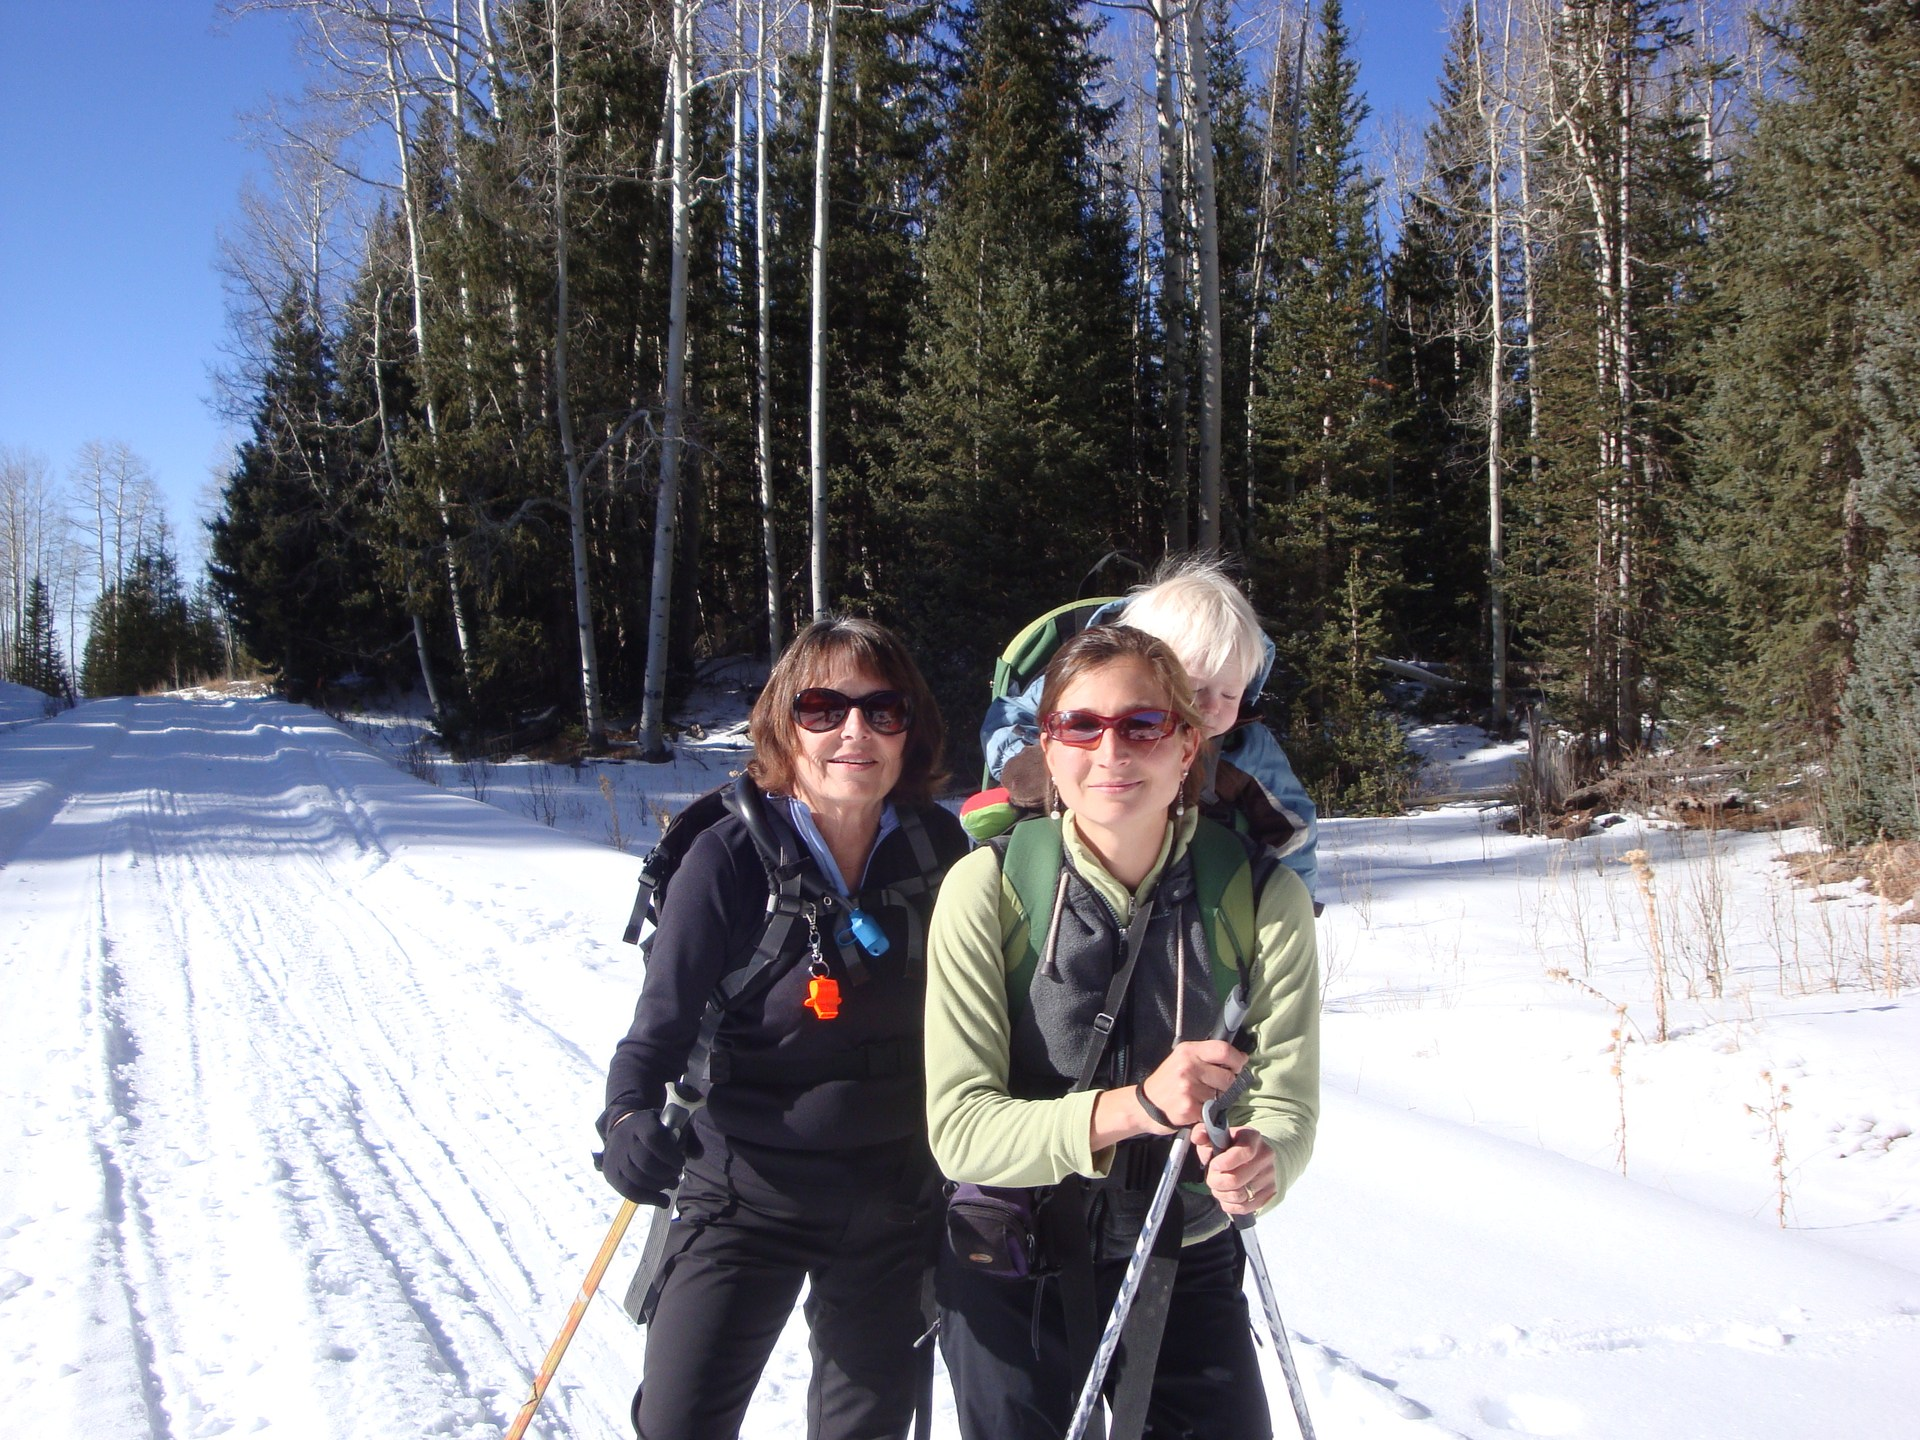 XC Skiing in the La Sals